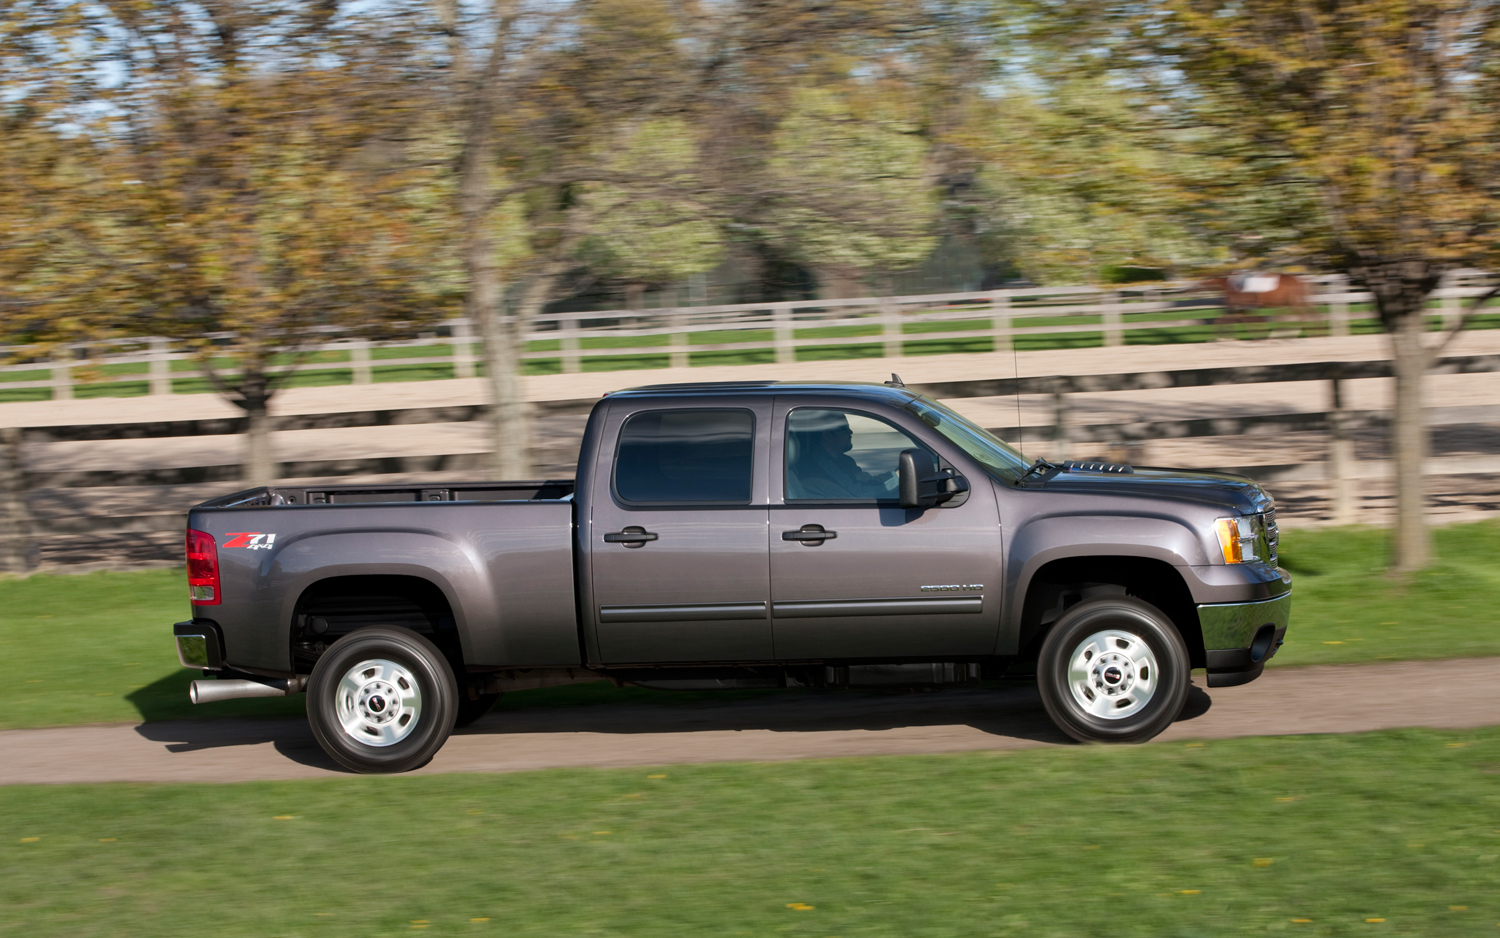 2012 Gmc Sierra 2500hd #5